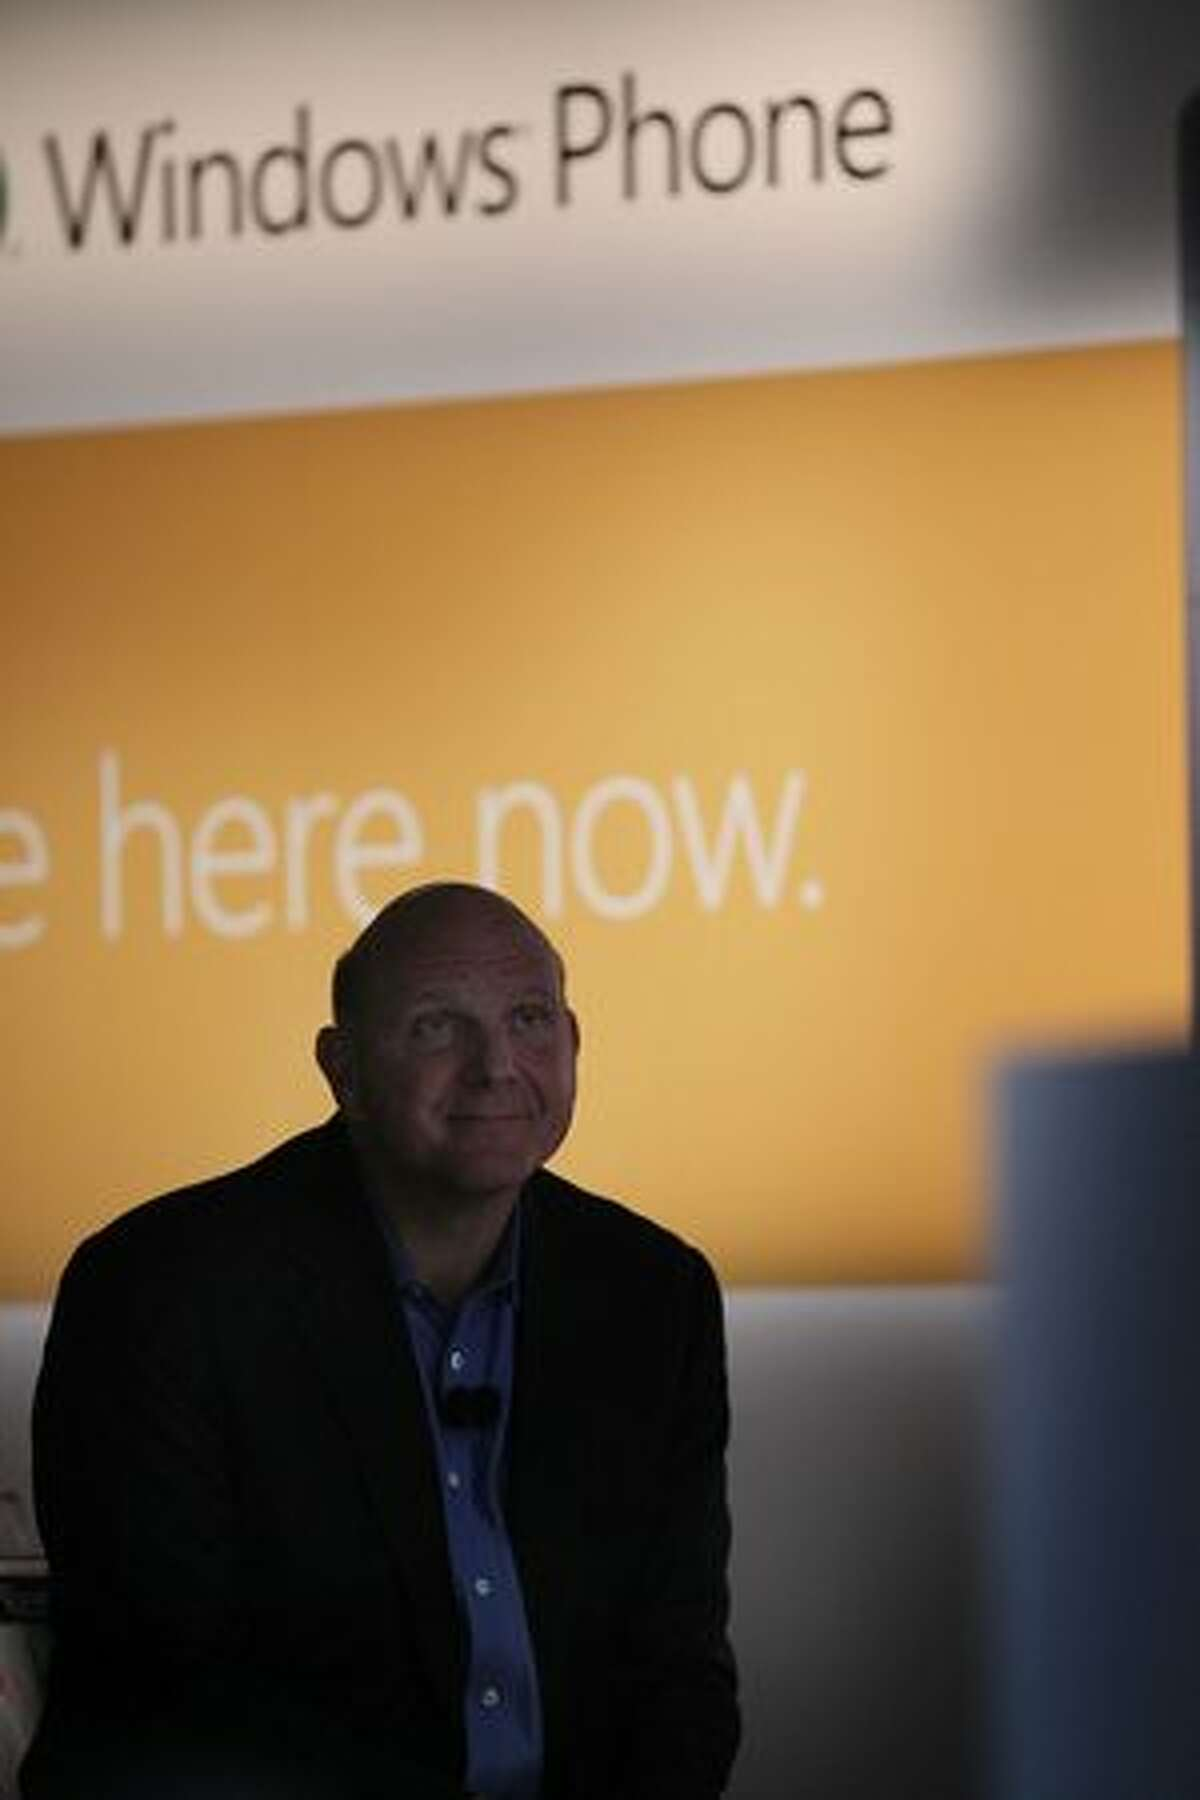 Microsoft CEO Steve Ballmer introduces the new Windows Phone 7 mobile operating system on Oct. 11, 2010, in New York, New York. The platform, which will be available in the U.S. on AT&T's and T-Mobile's networks, looks to compete with the iPhone, Android and BlackBerry smart phones.